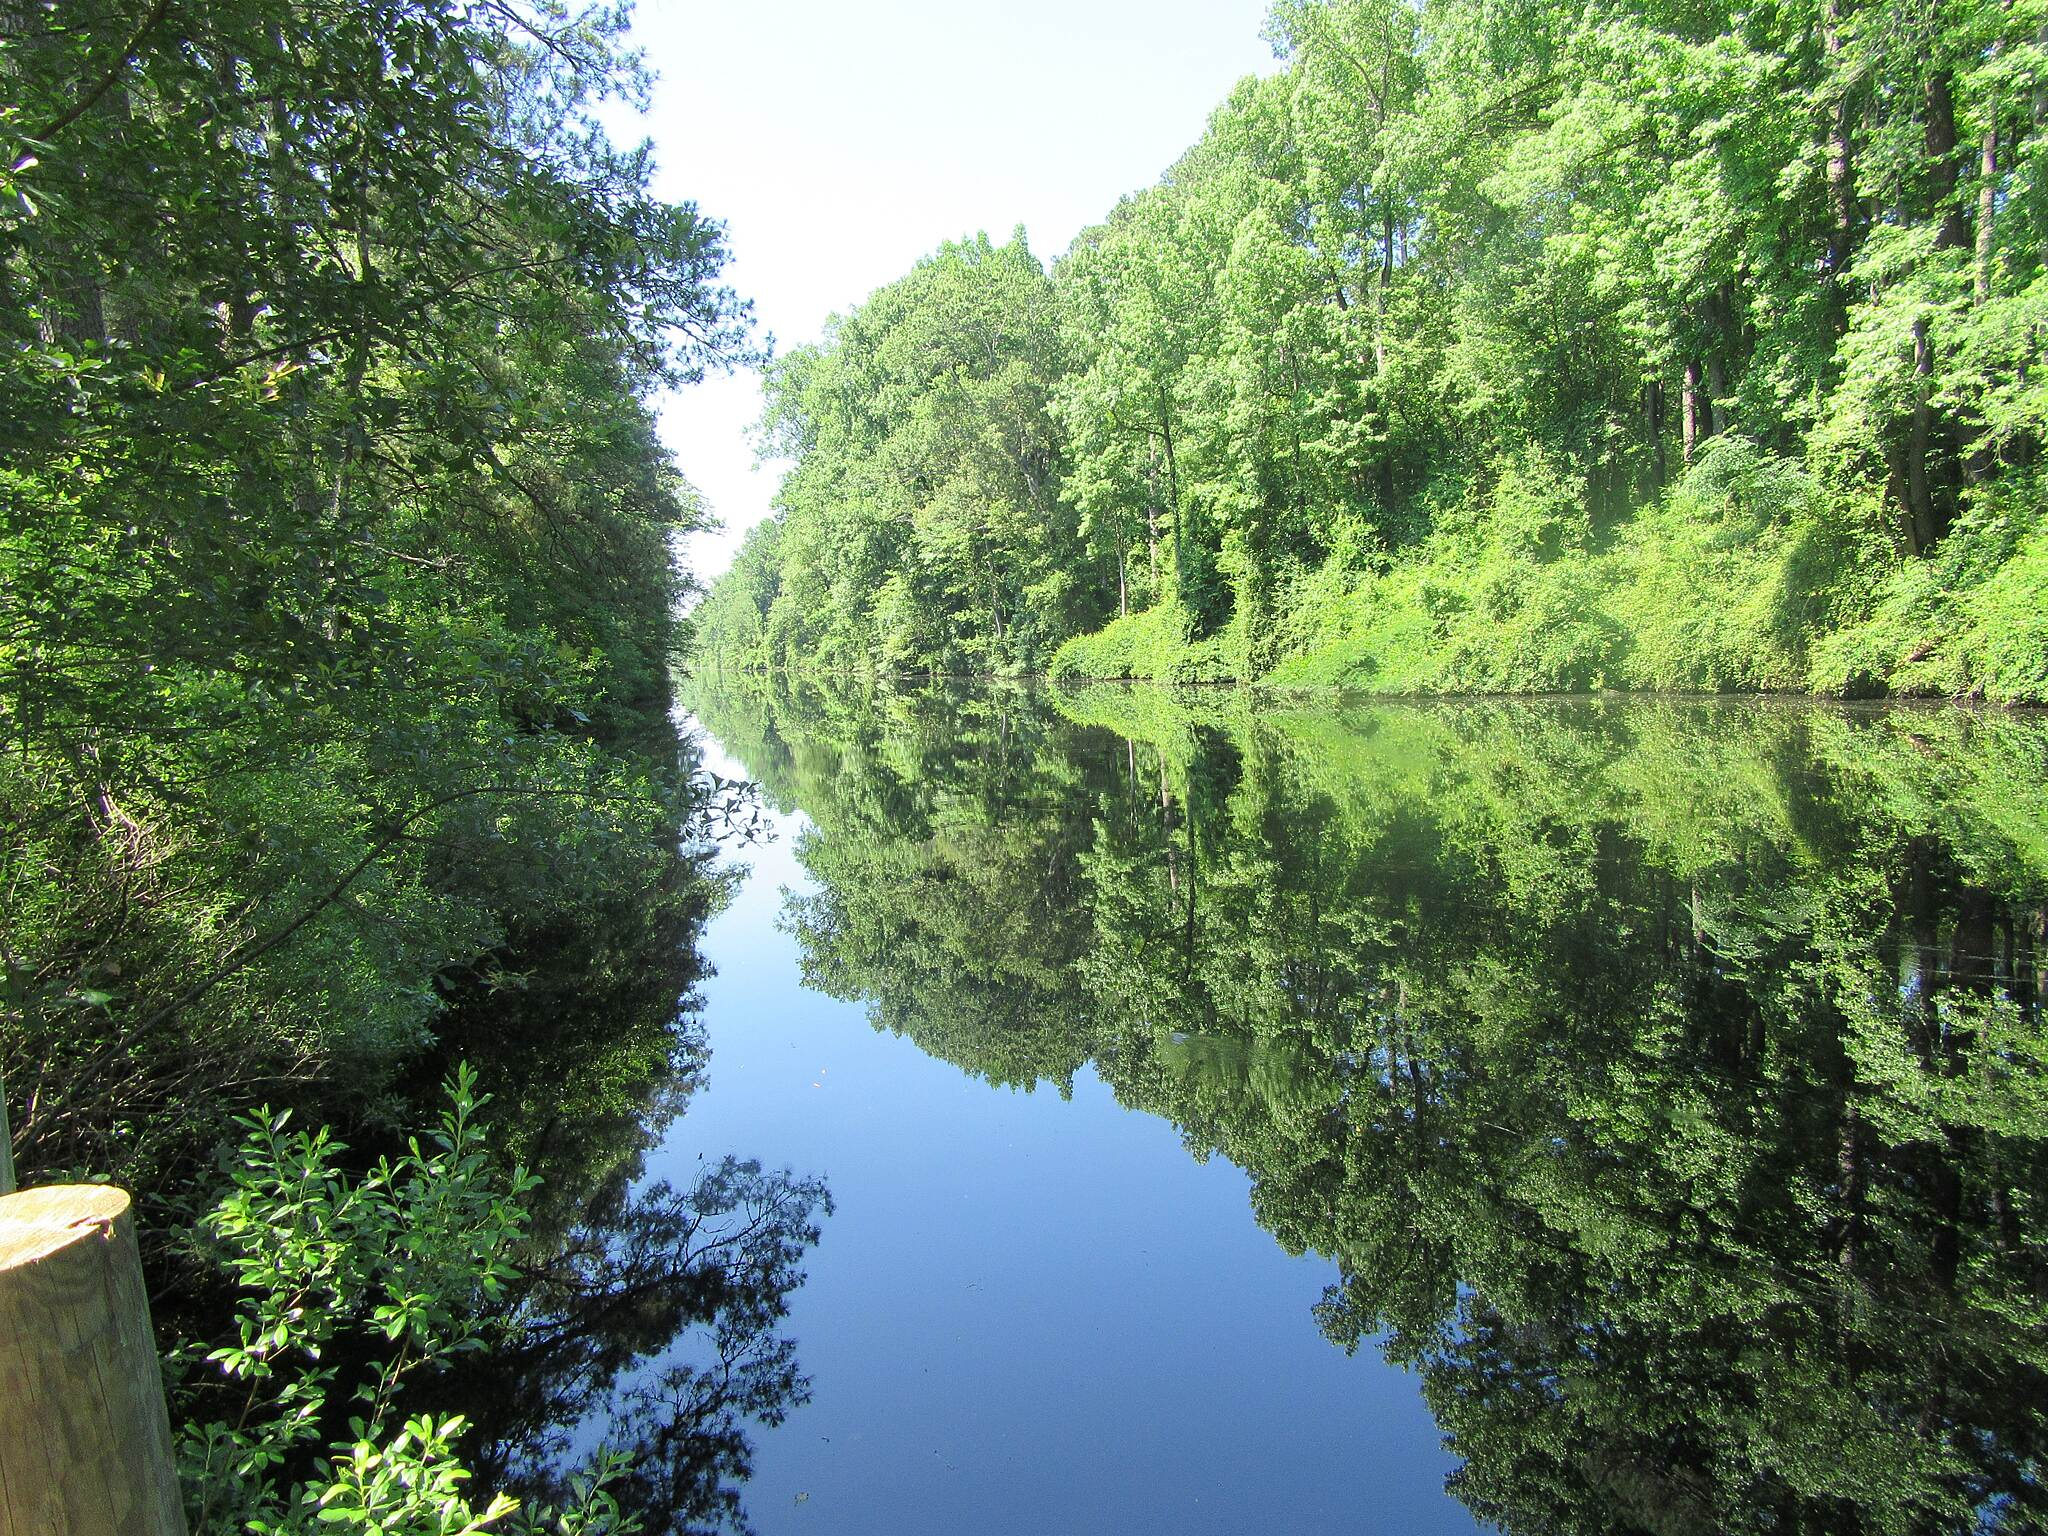 Dismal Swamp Canal Trail (VA) The Dismal Swamp Canal Took this photo on June, 12, 2015.